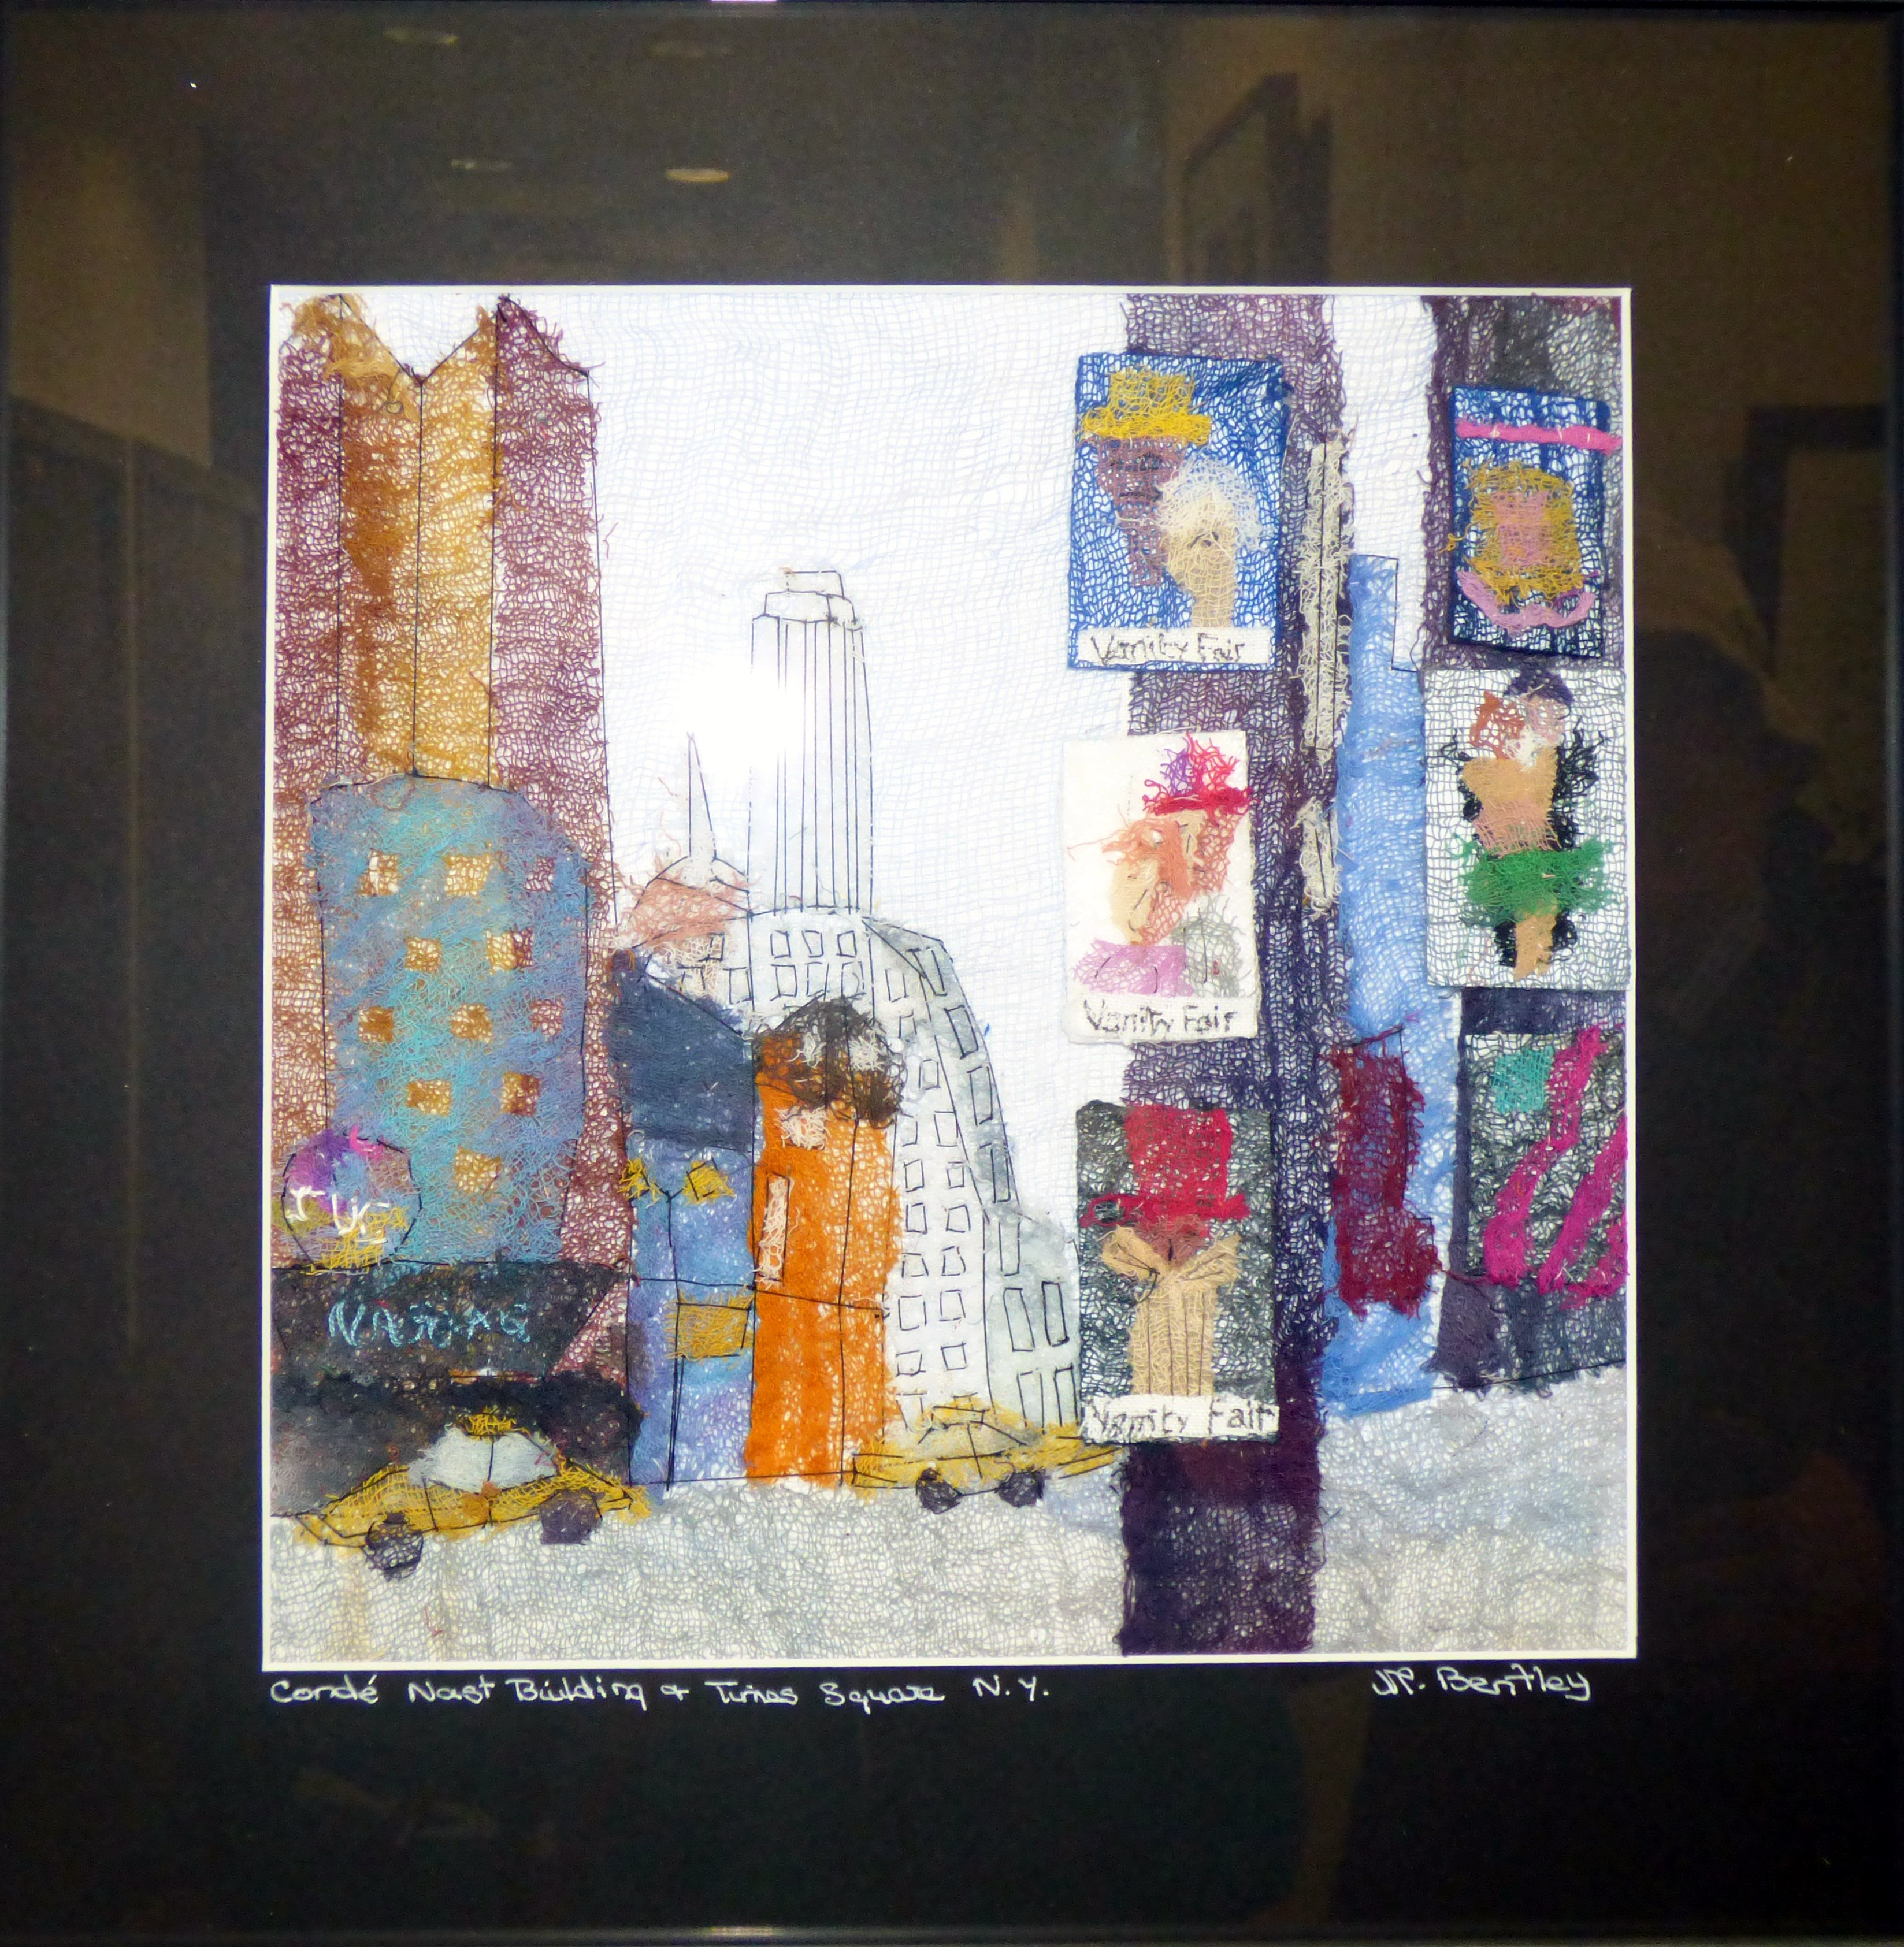 CONDE NAST BUILDING AND TIMES SQUARE, NEW YORK by Mavis Bentley, hand embroidery in scrim & silk thread, Ten Plus @ The Atkinson, 2018